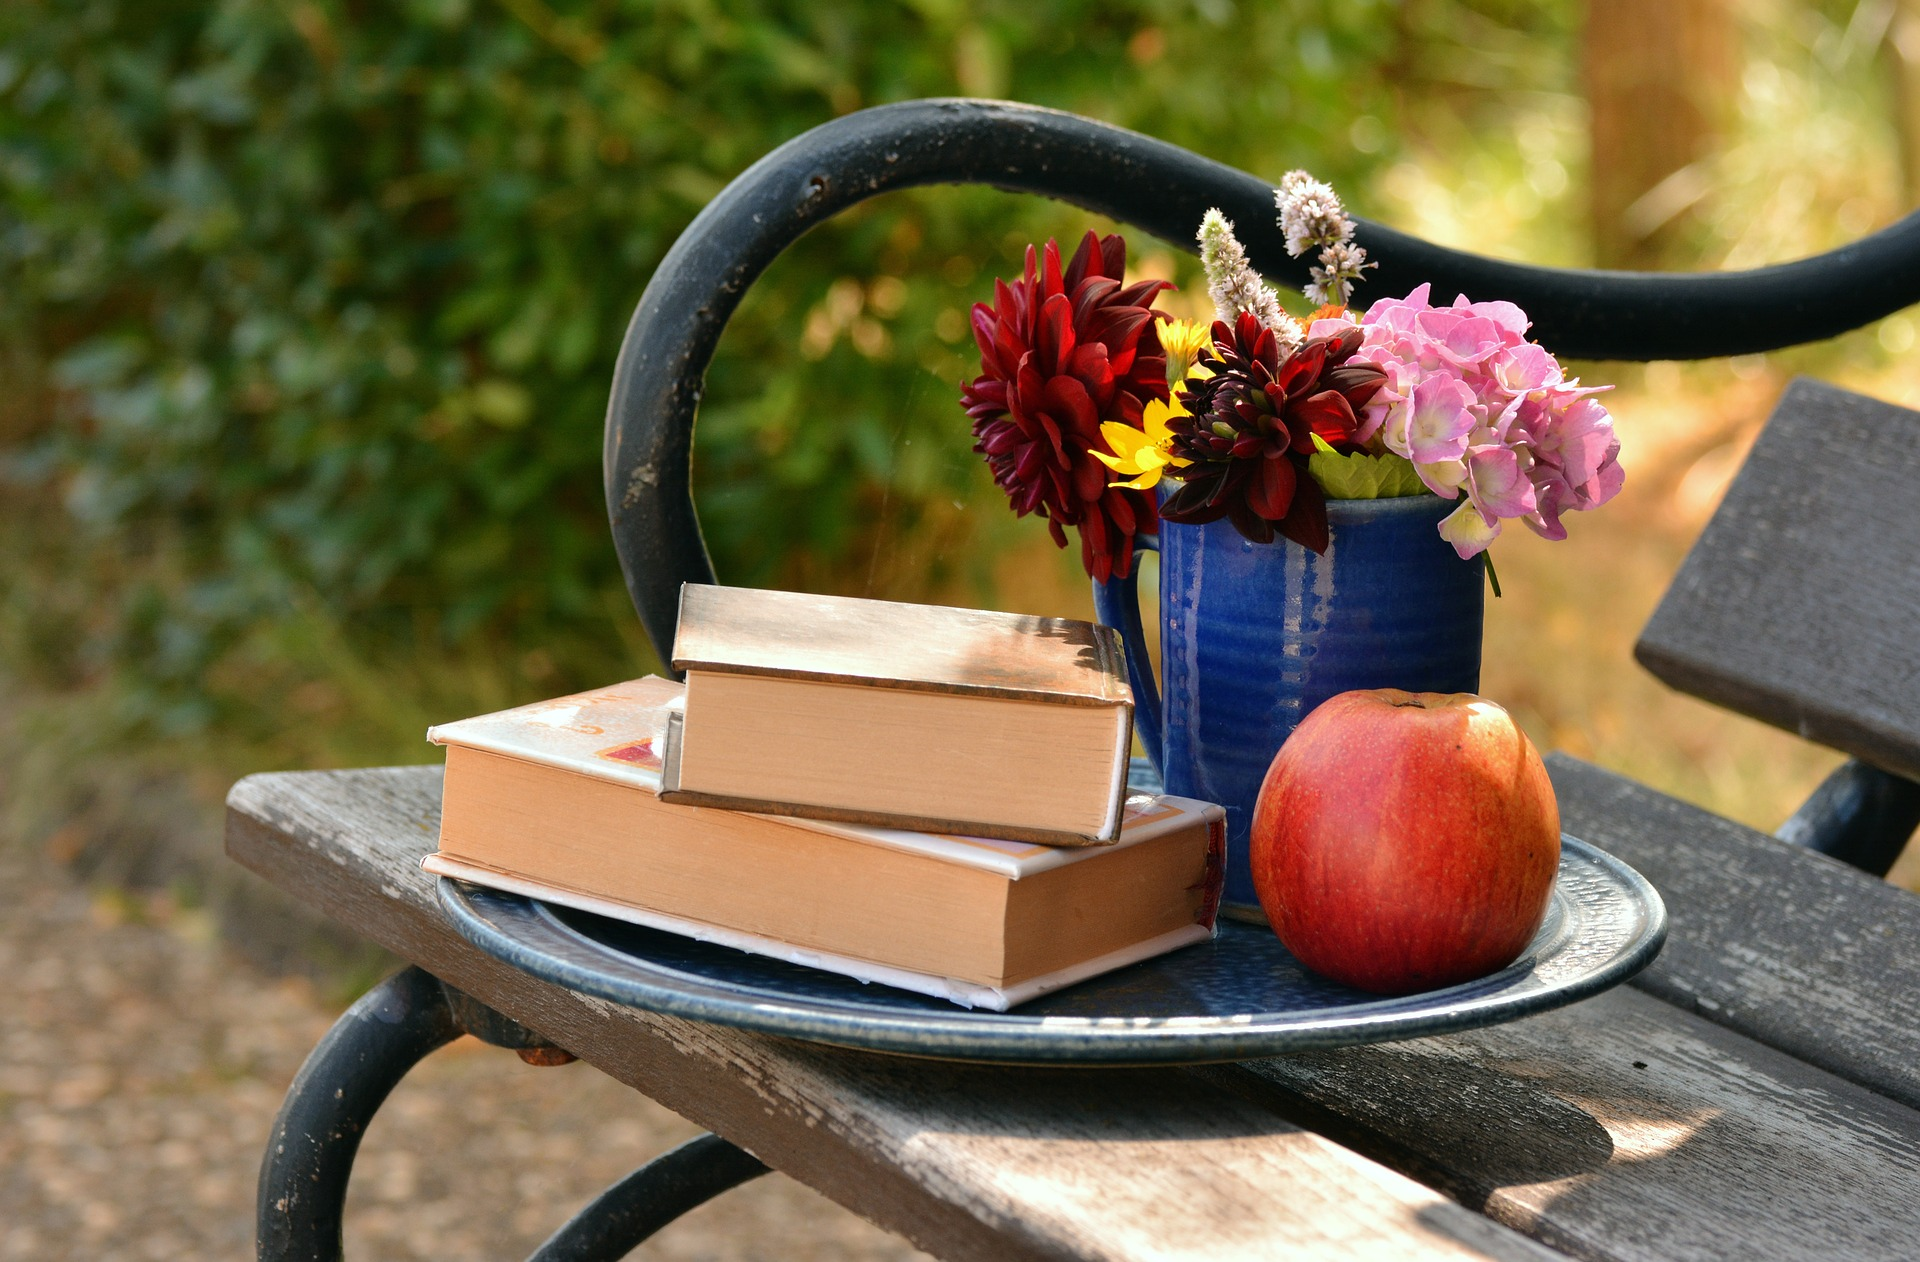 Image shows some books on a bench with a vase of flowers and an apple